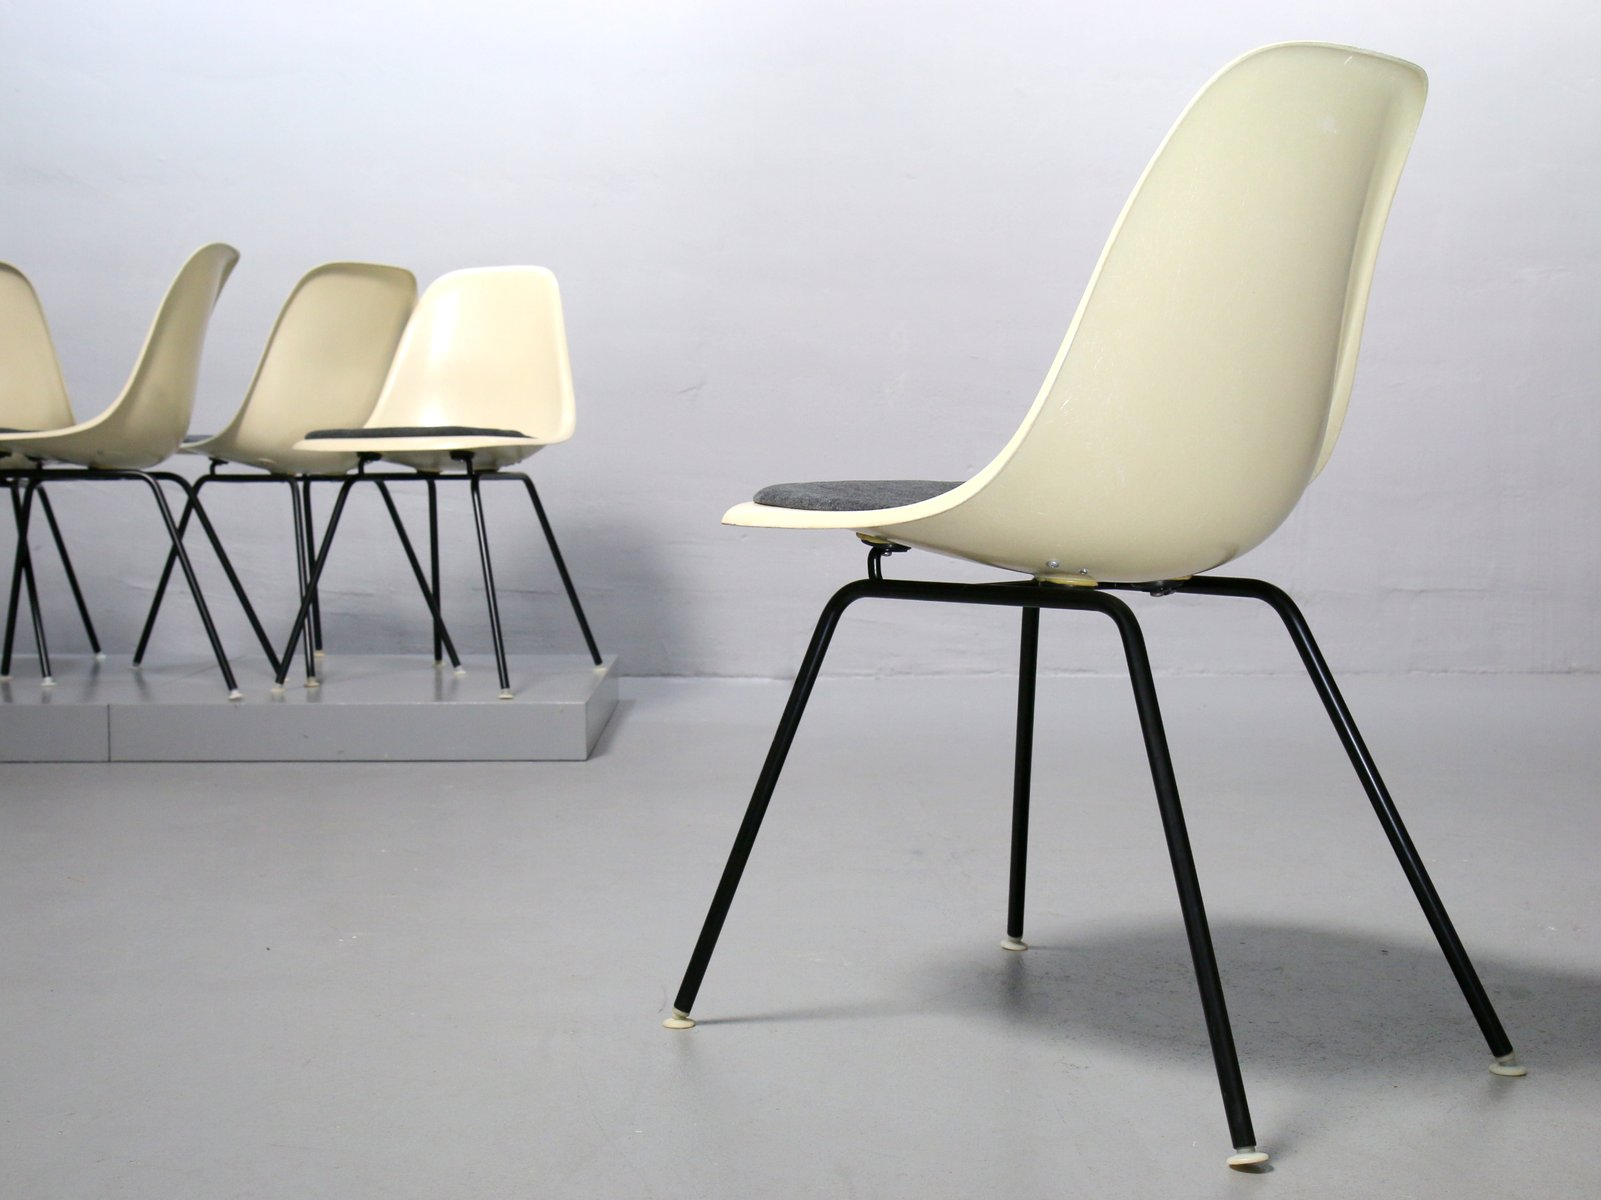 Vitra Eames Side Chair Vintage Fiberglass Side Chair By Charles Ray Eames For Vitra